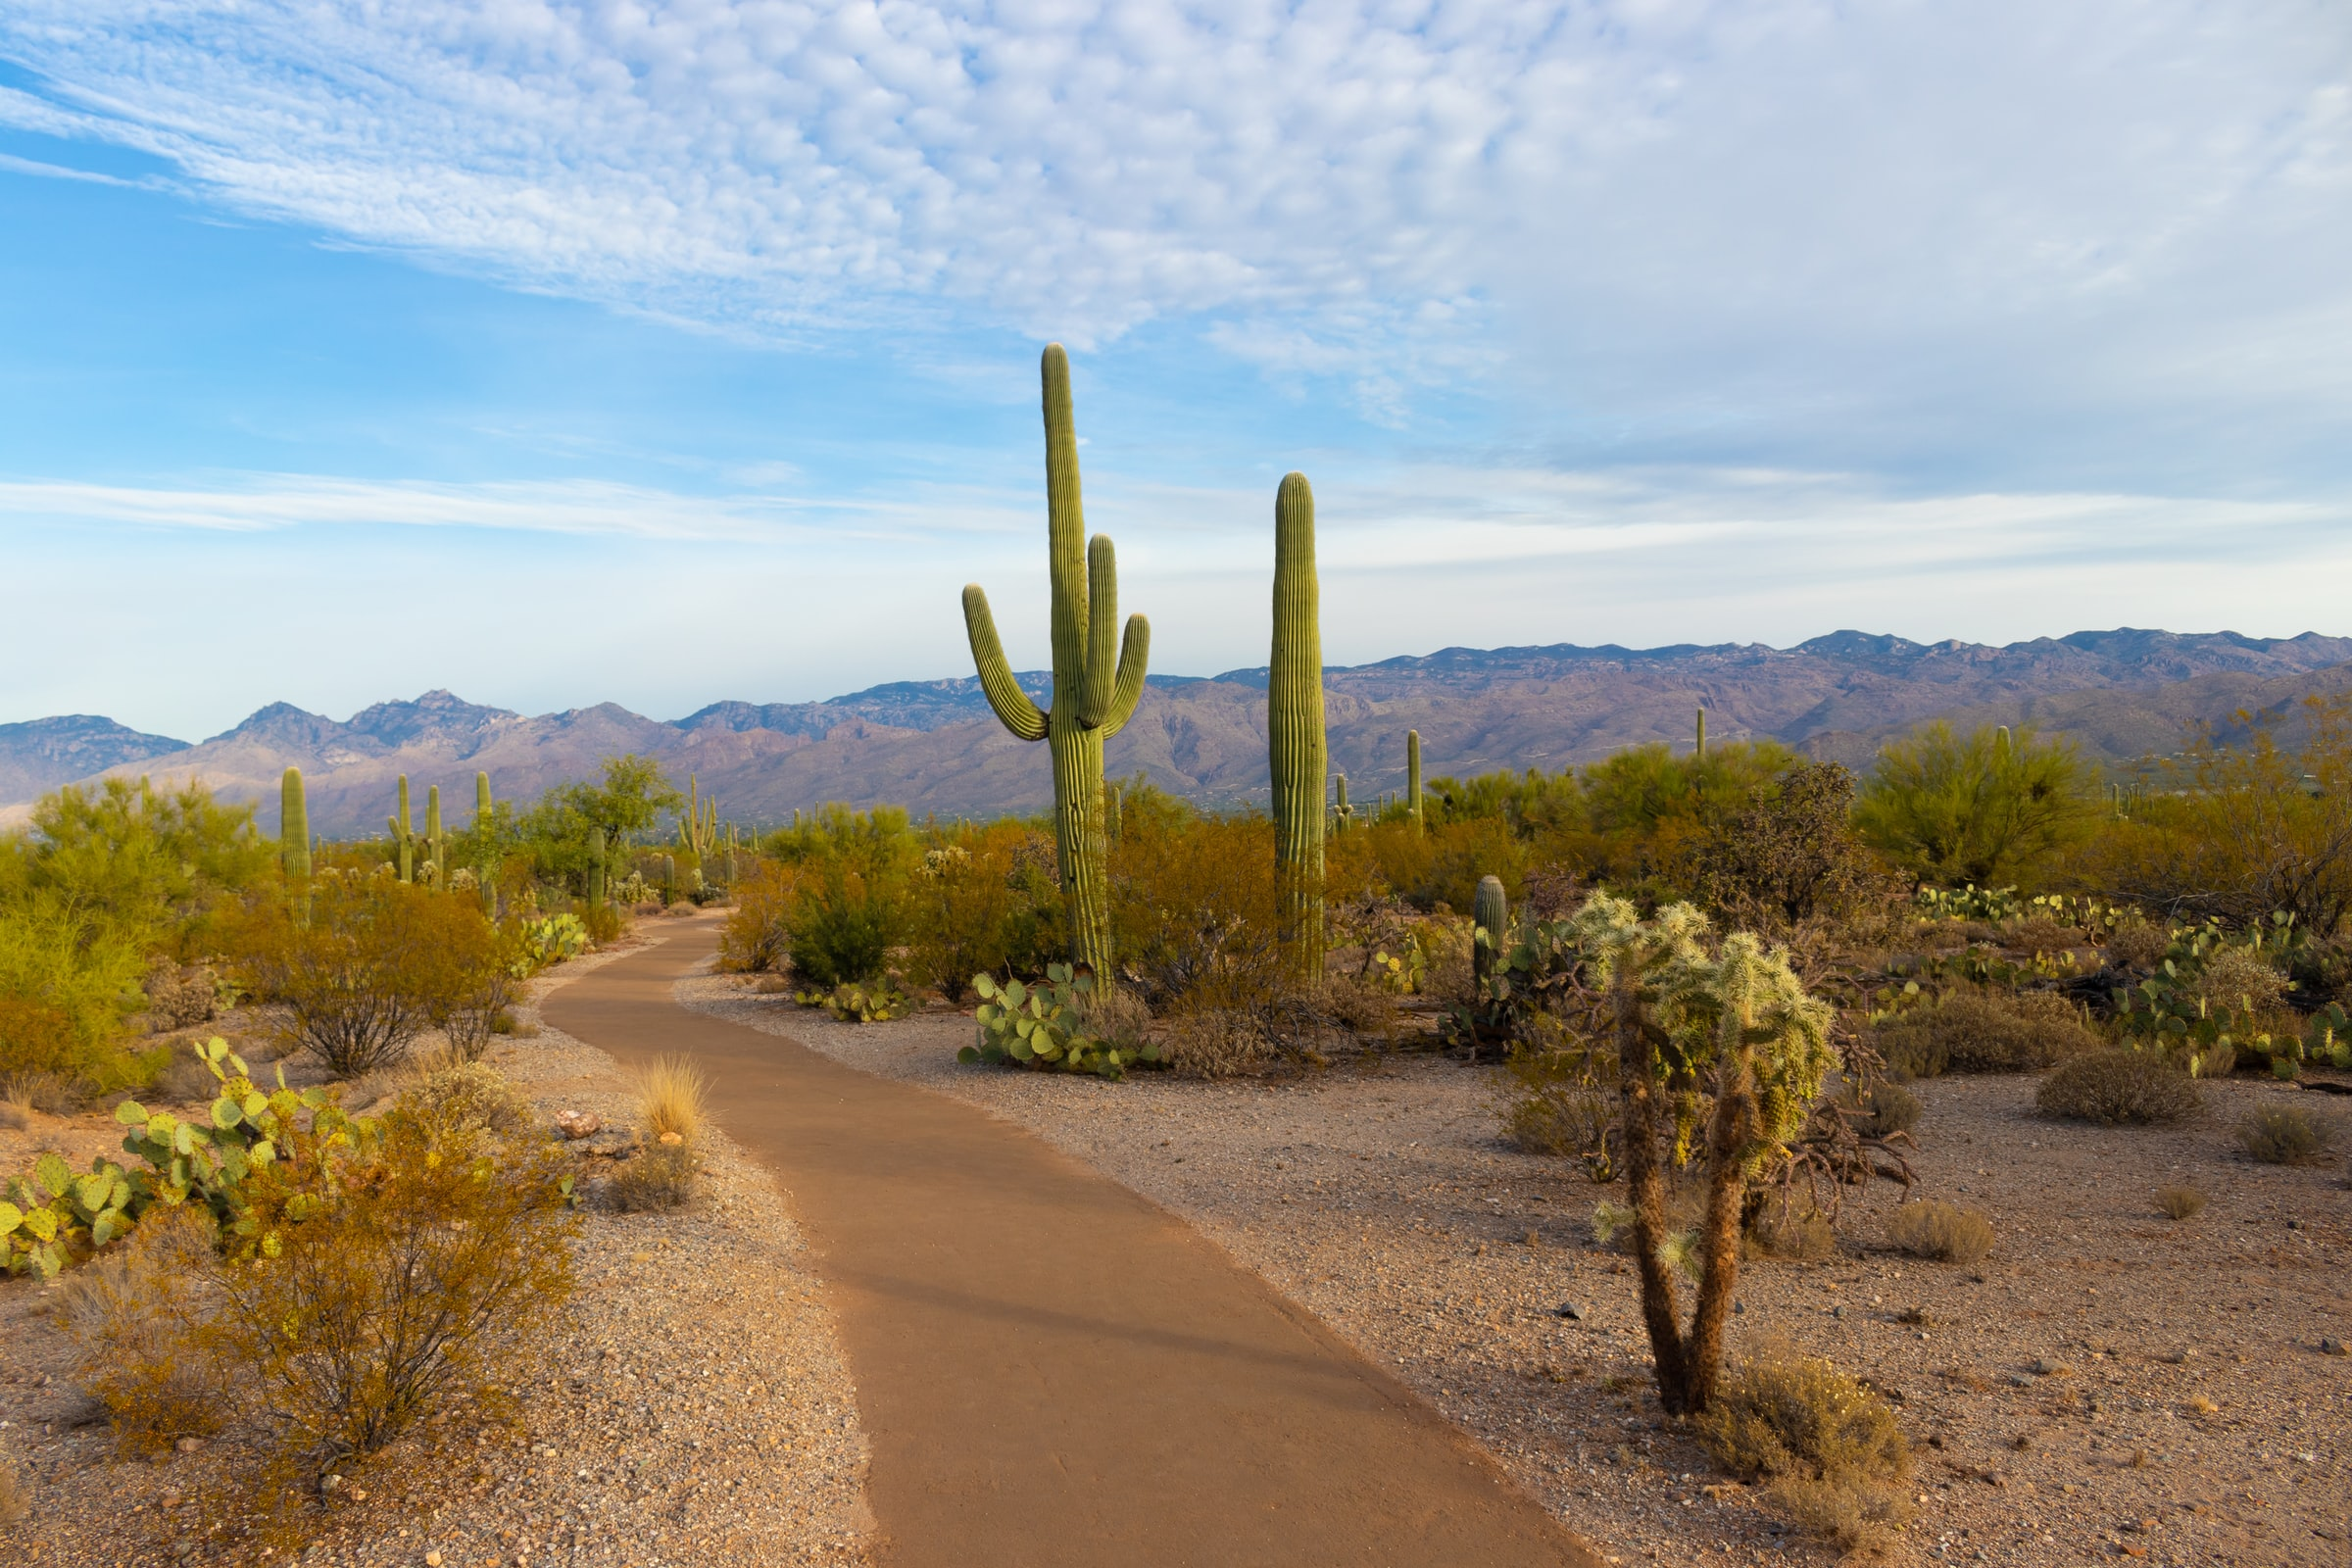 A road in an Arizona desert with large green cacti and a blue sky